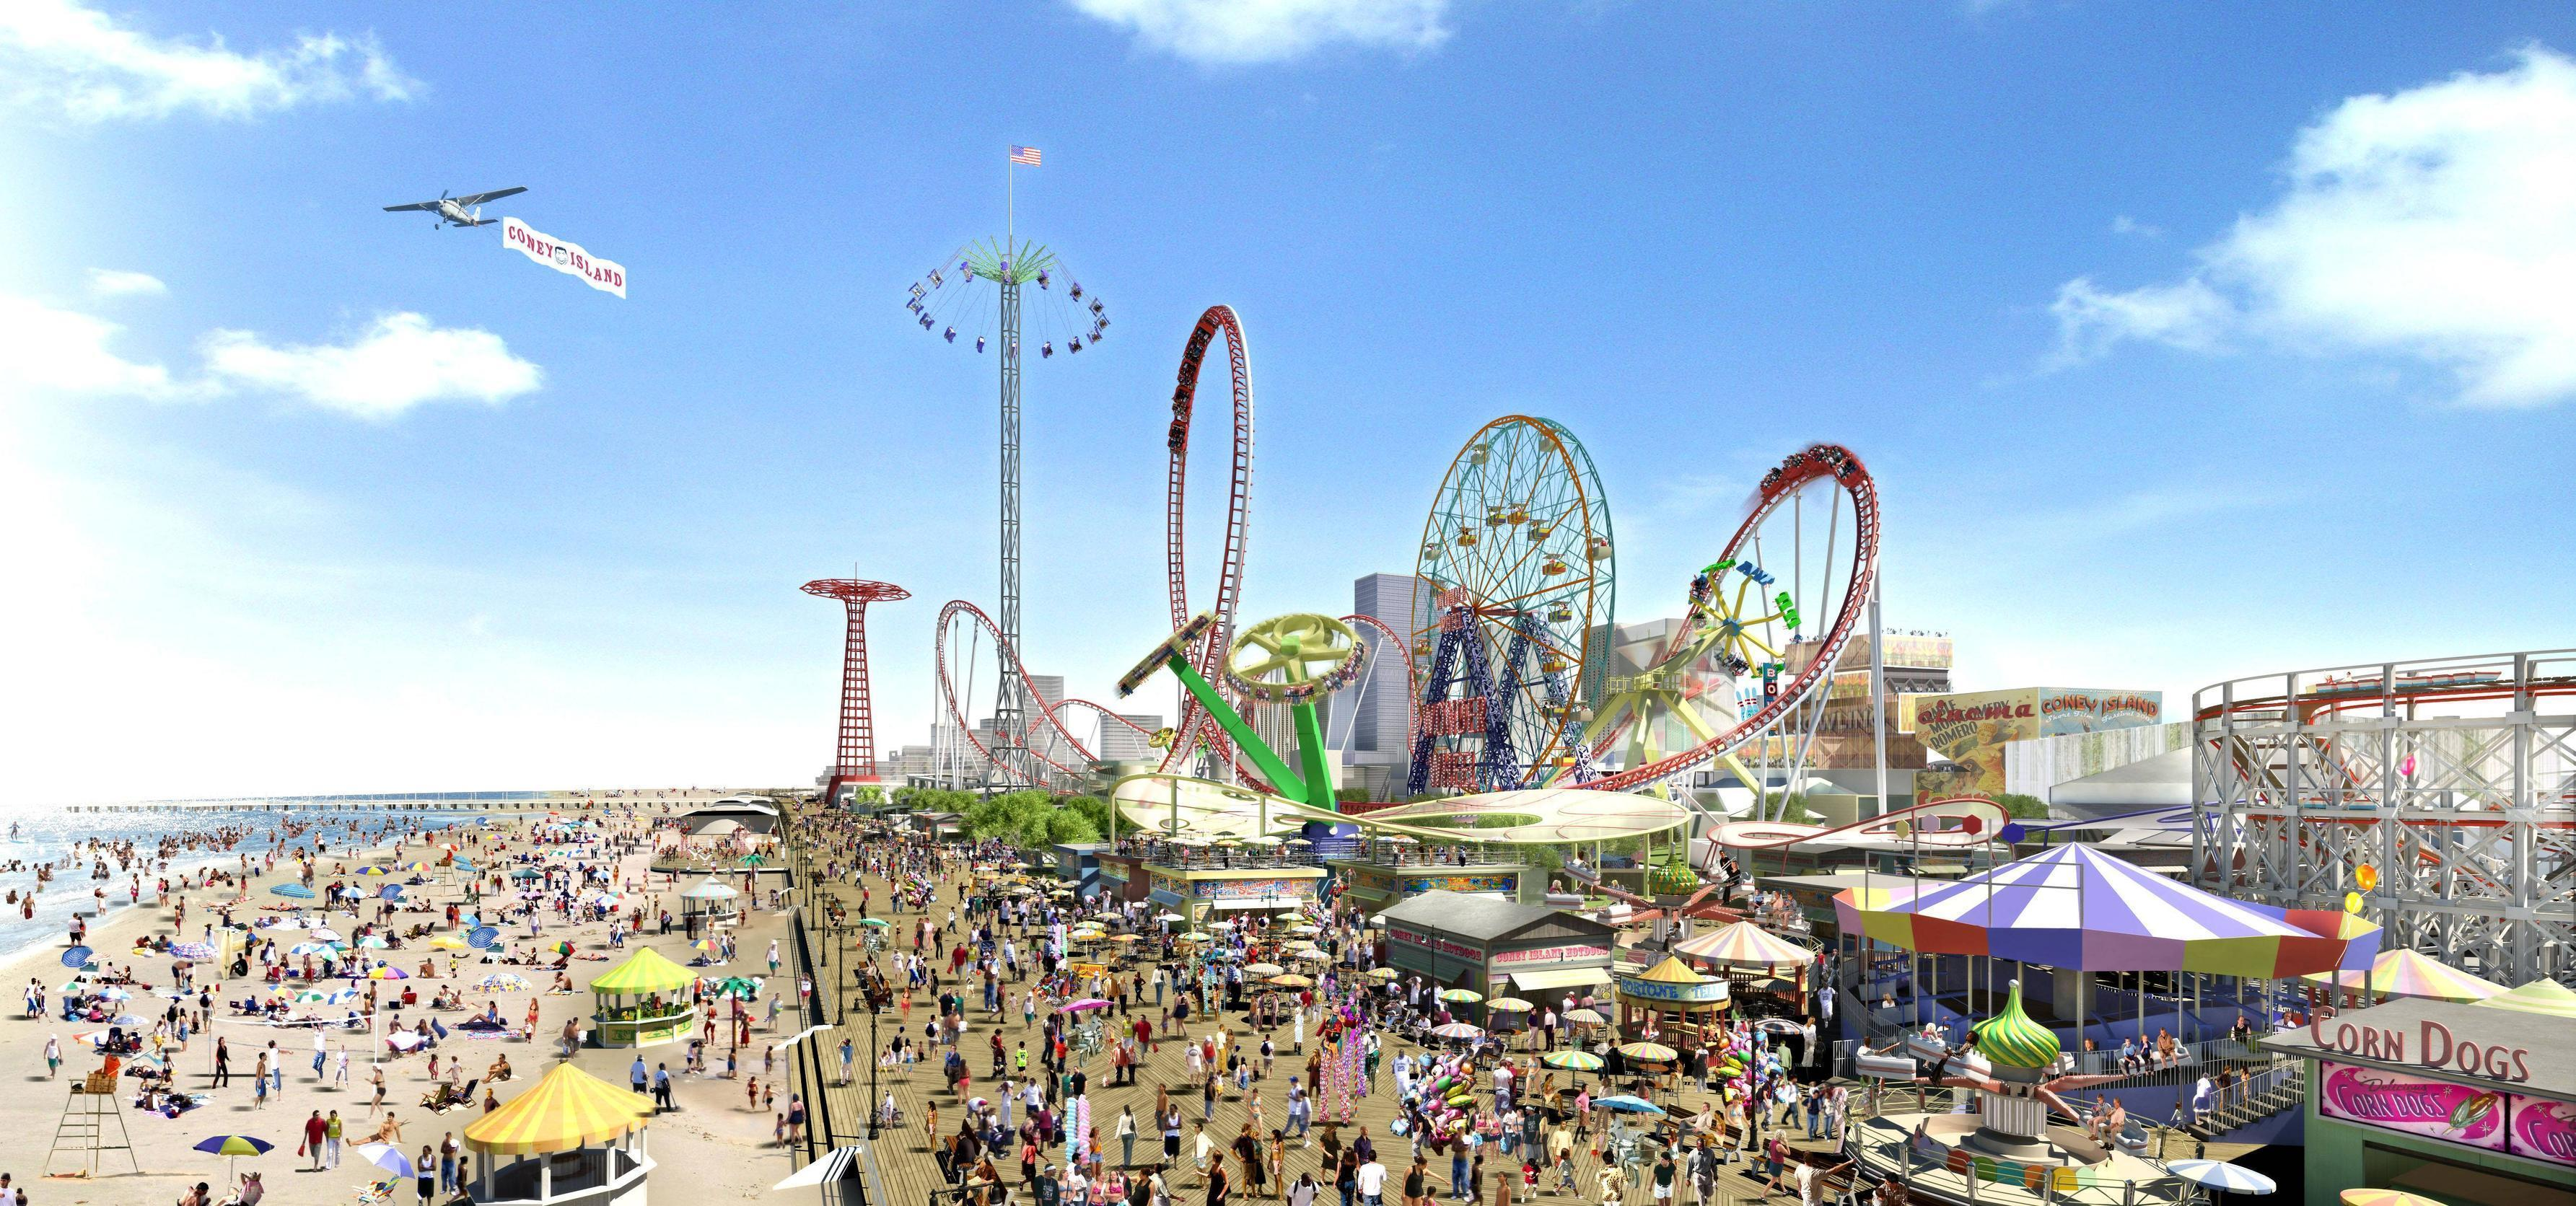 Coney Island Wallpapers 3570x1672